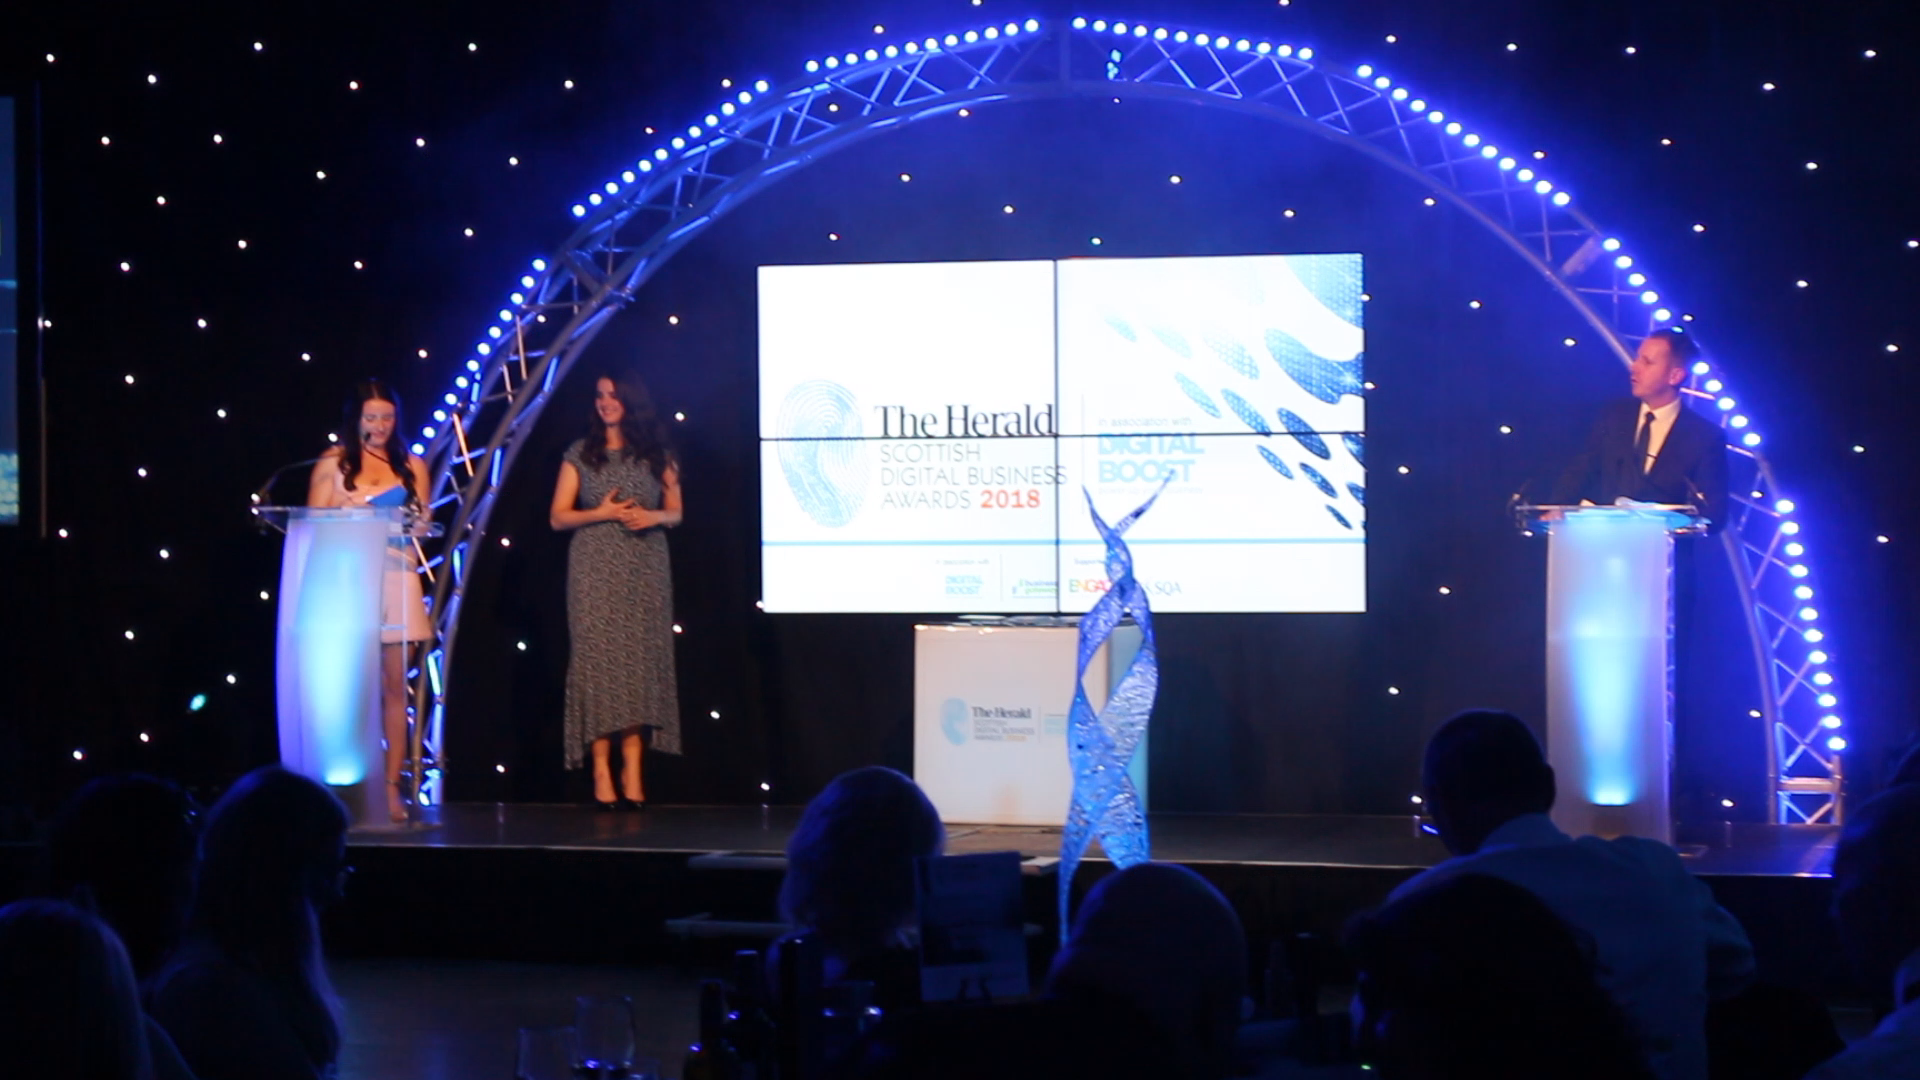 Herald Scottish Digital Business Awards 2018